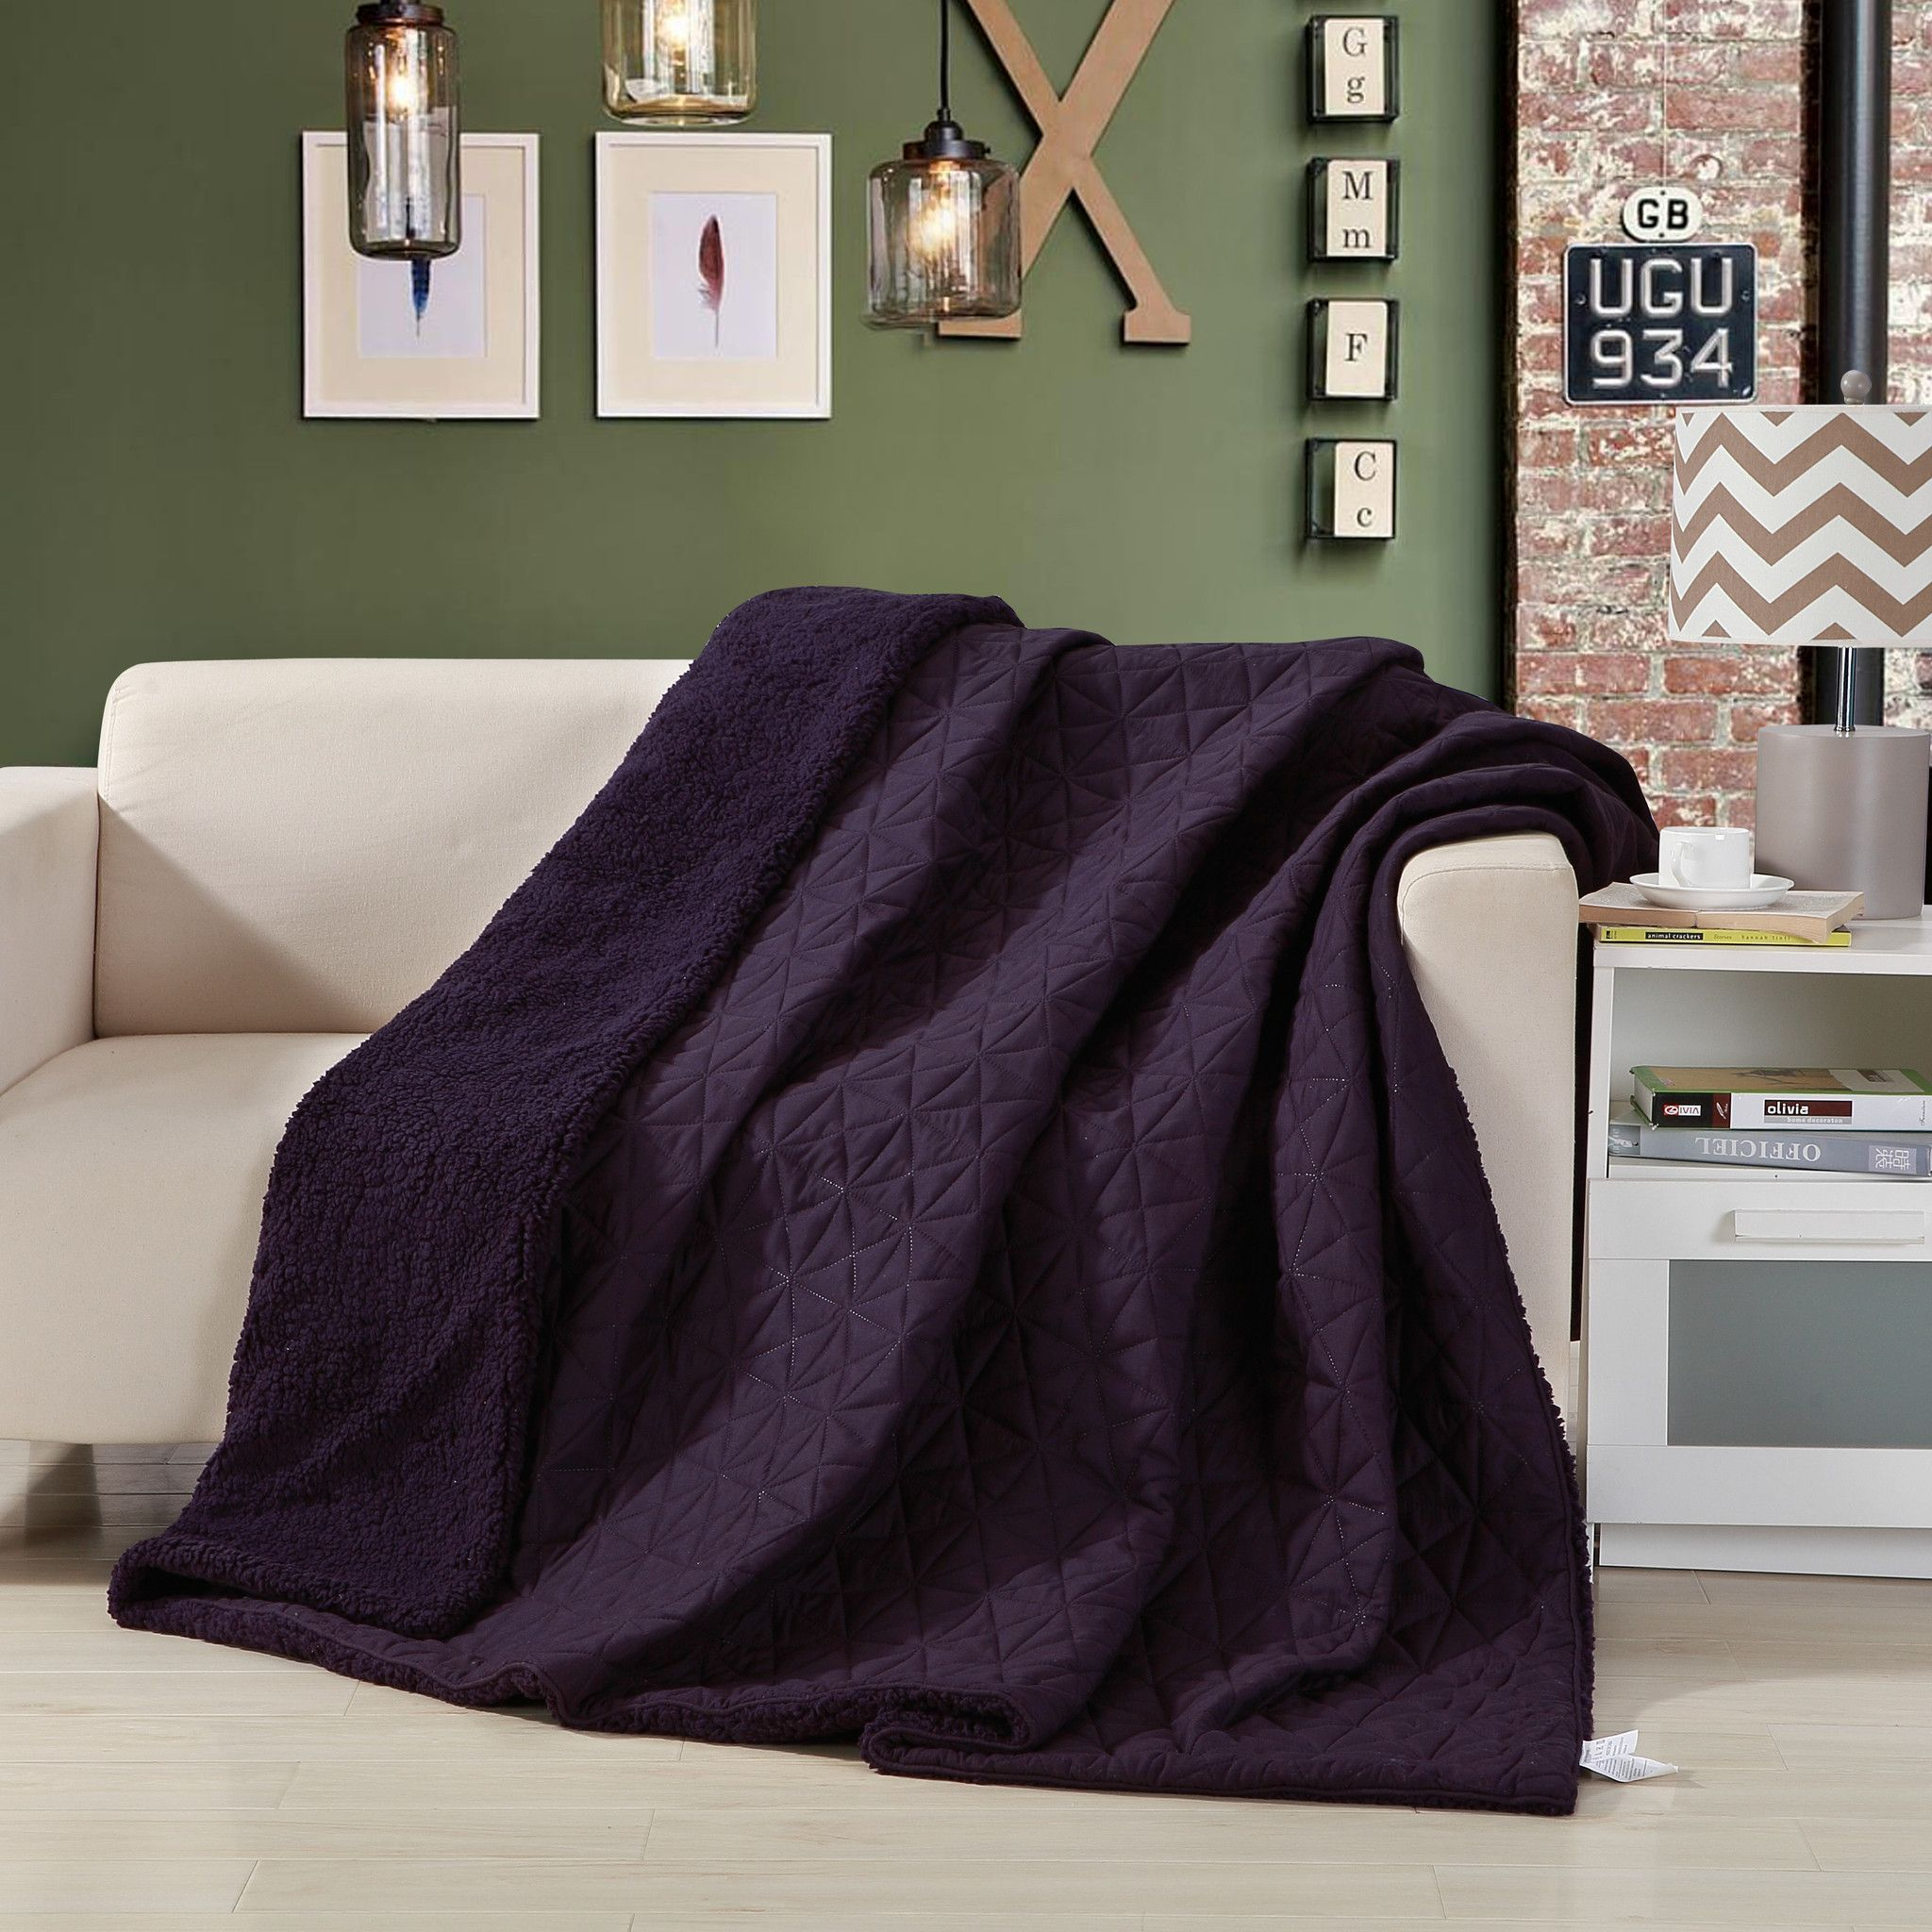 dada bedding eggplant aubergine reversible soft stitched with  - quilt  dada bedding eggplant aubergine reversible soft stitched withsherpa backside quilted ultra sonic throw